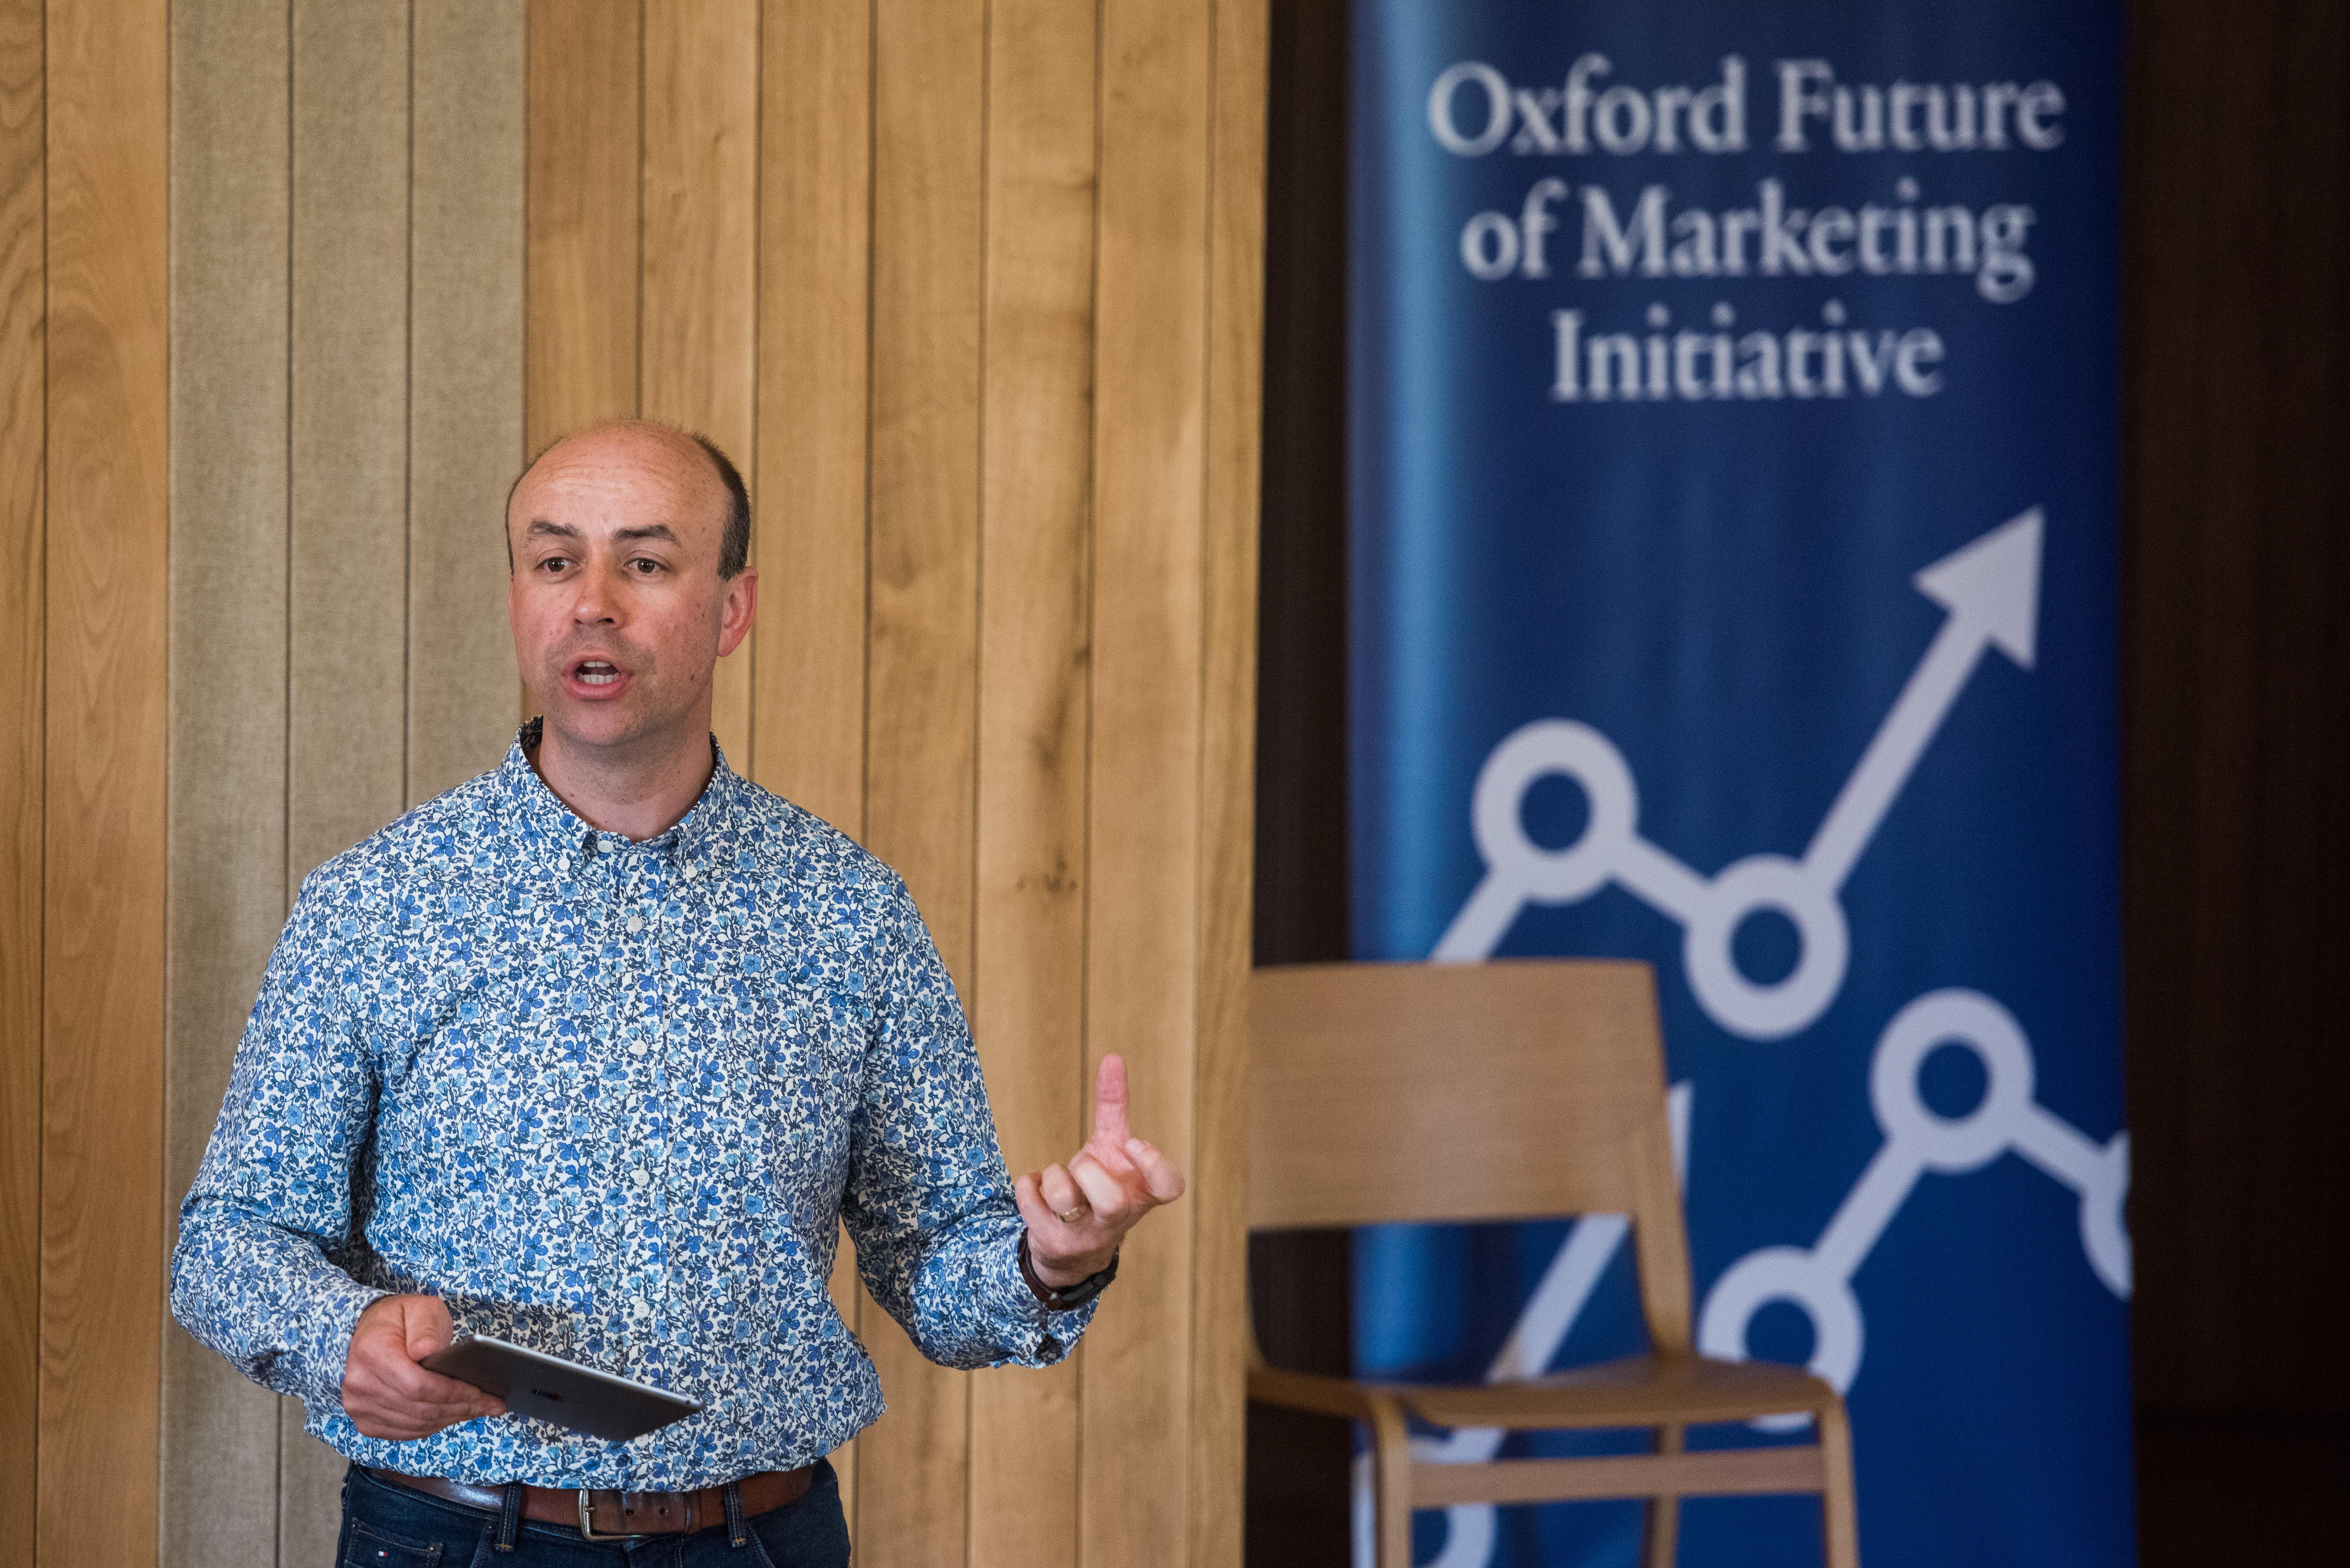 The Oxford Future of Marketing Initiative